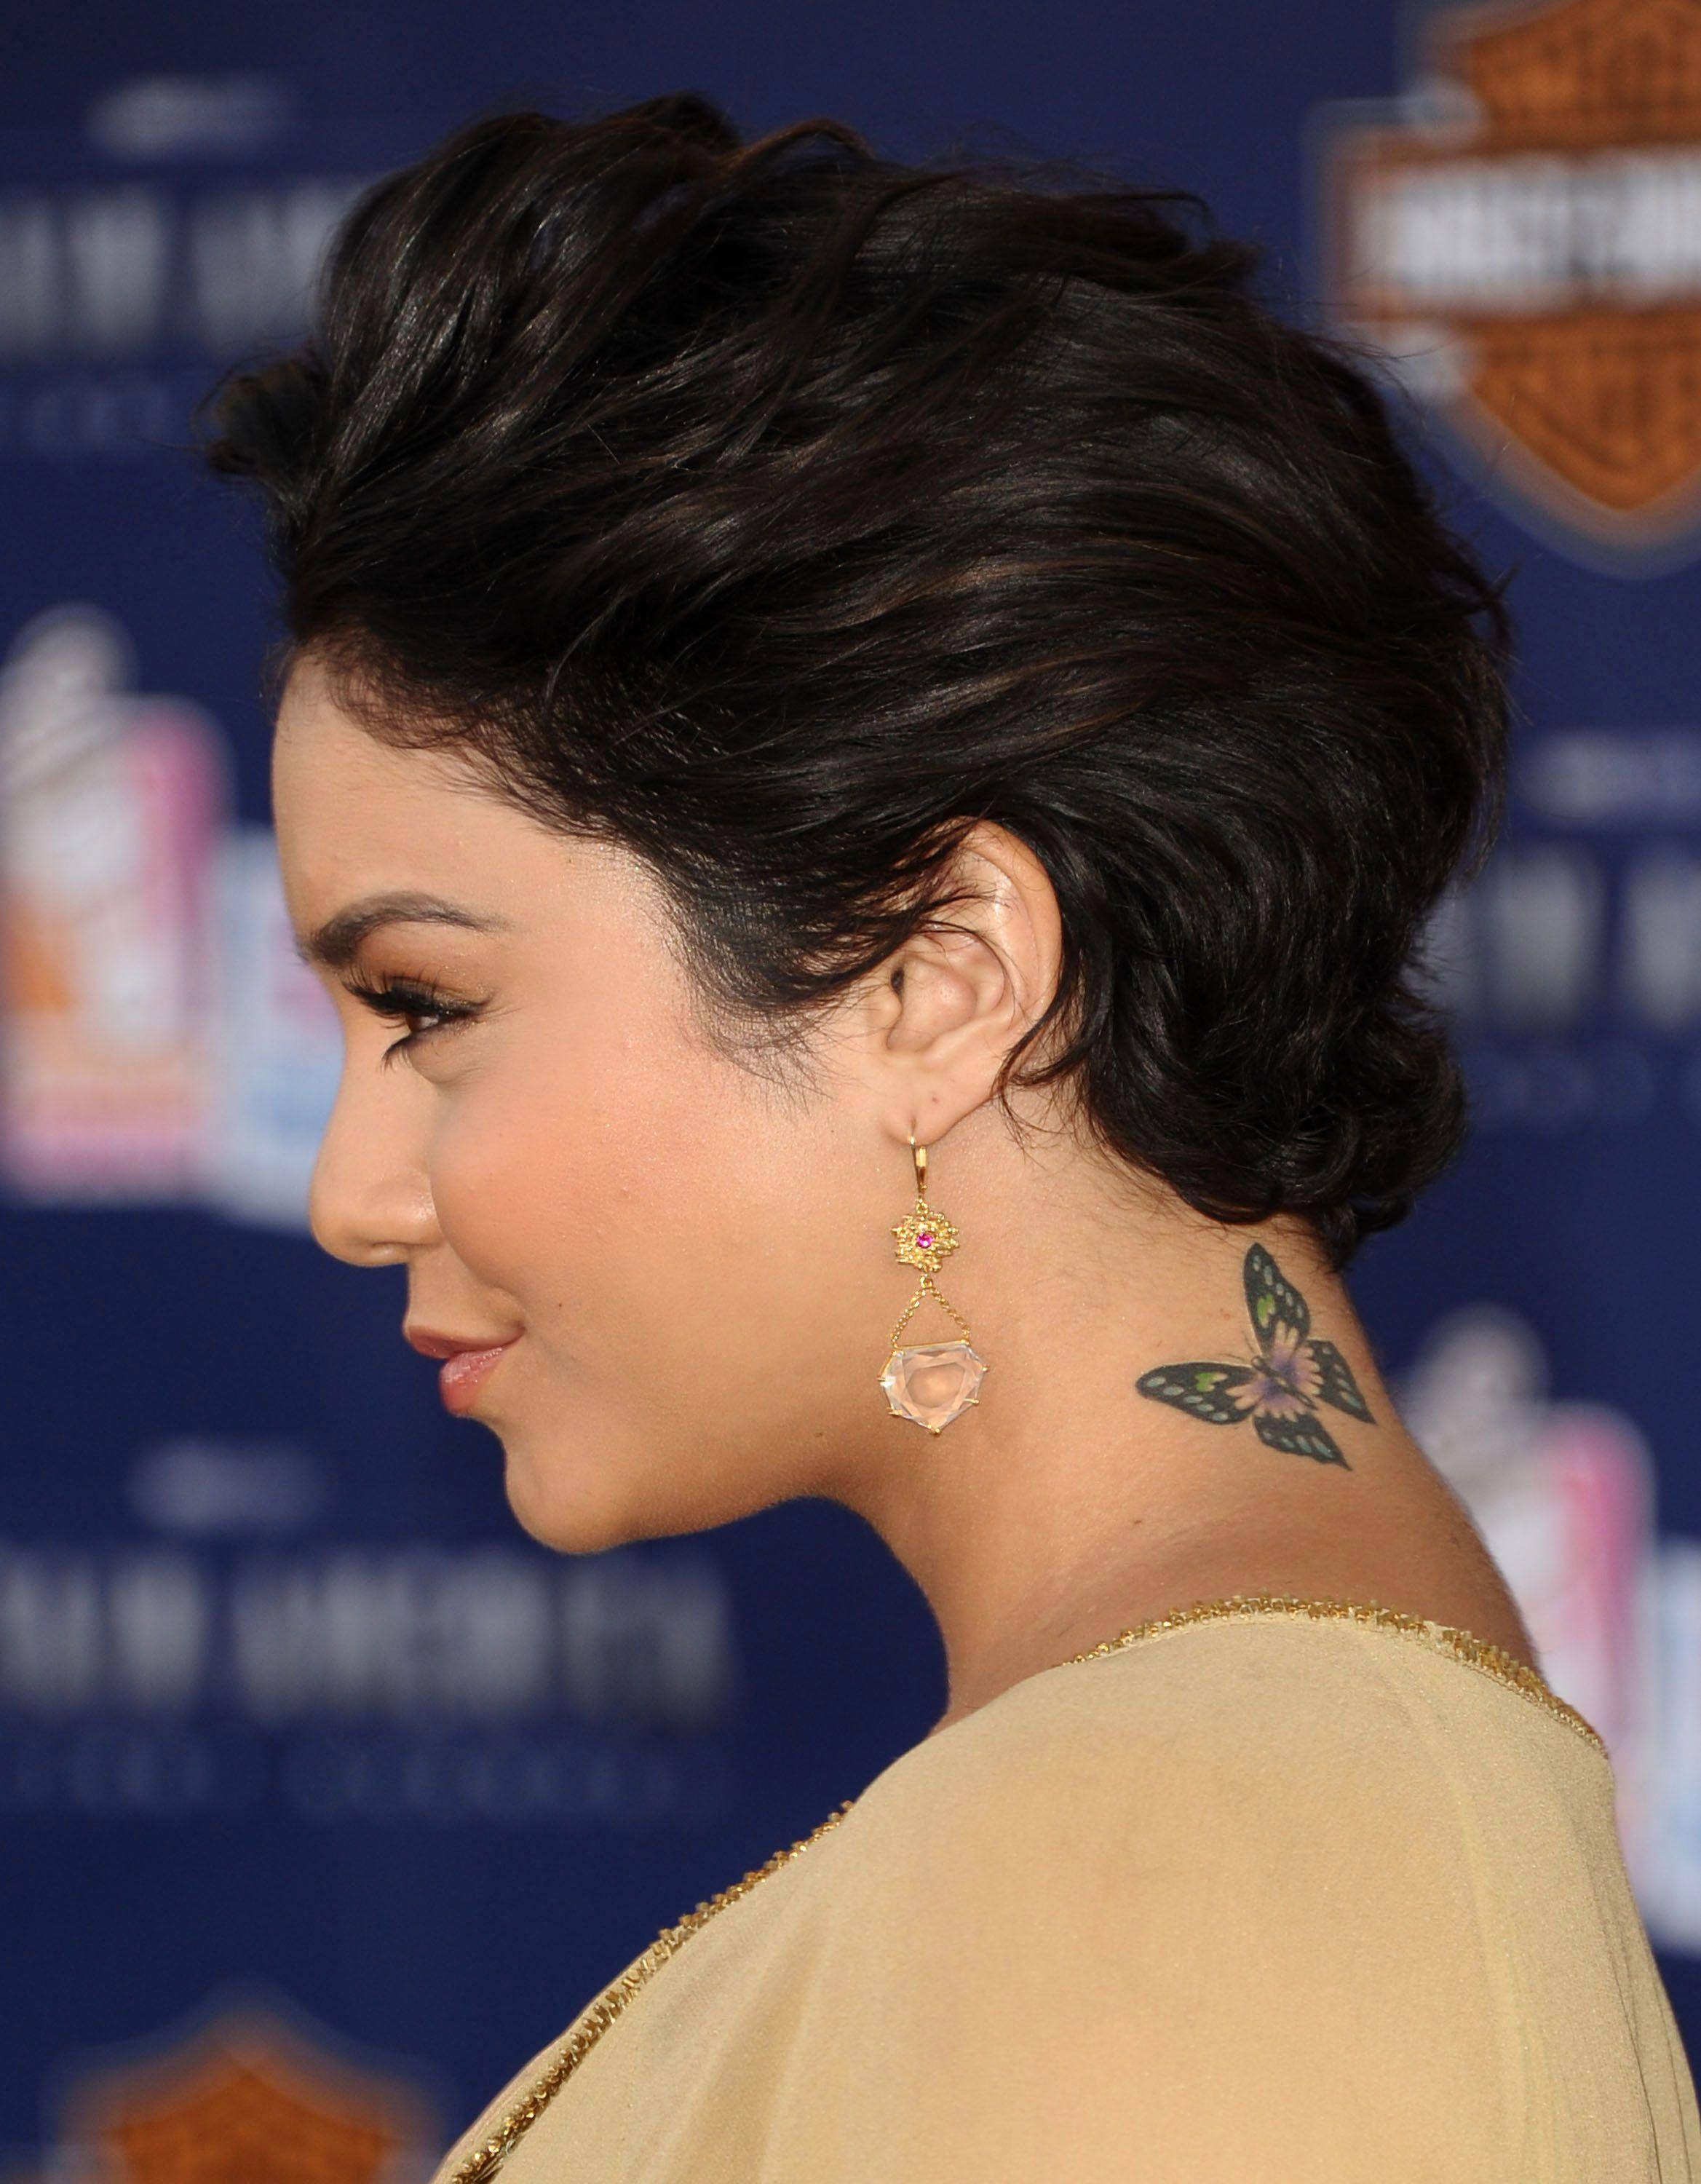 Tattoos on neck (With images) Vanessa hudgens short hair